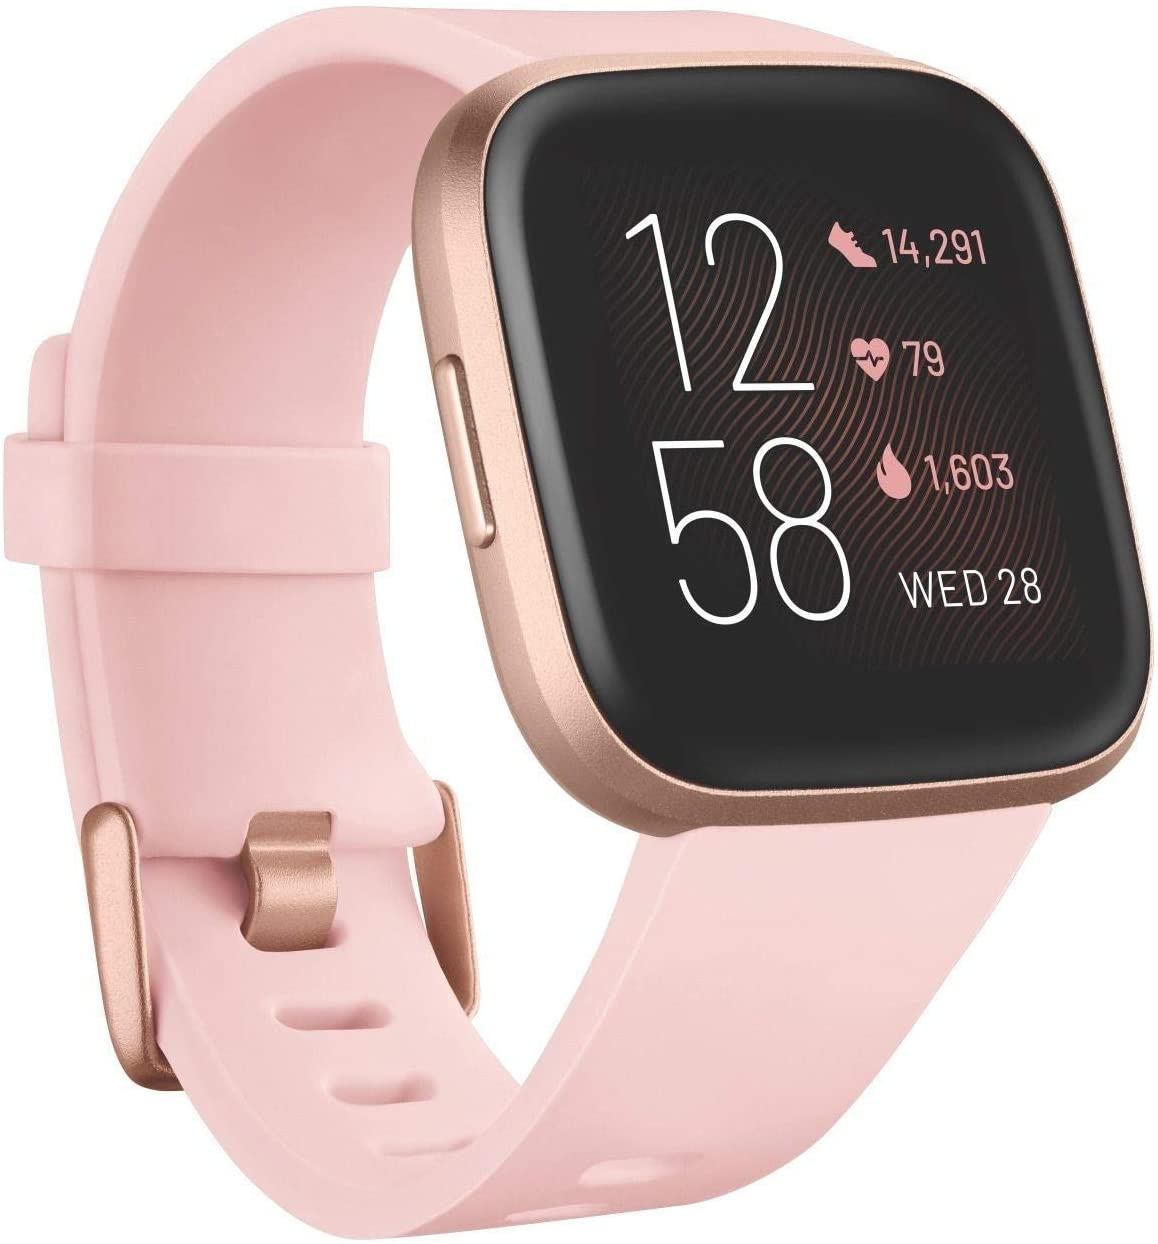 Fitbit Versa 2 Health & Fitness Smartwatch with Voice Control, Sleep Score & Music, Petal/Copper Rose, with Alexa built-in